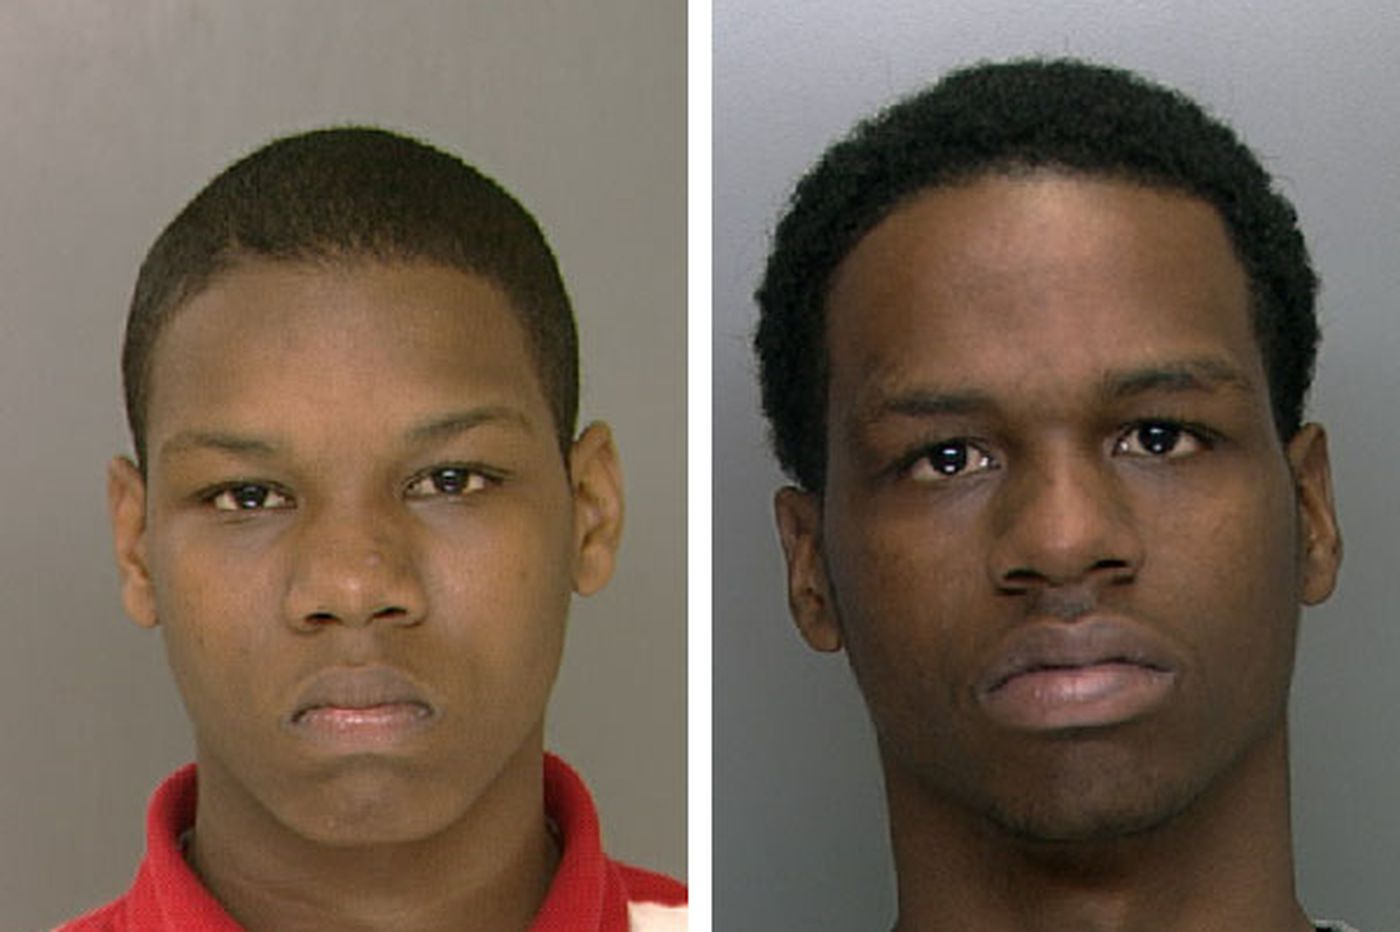 $5M bail for accused teen SEPTA shooter